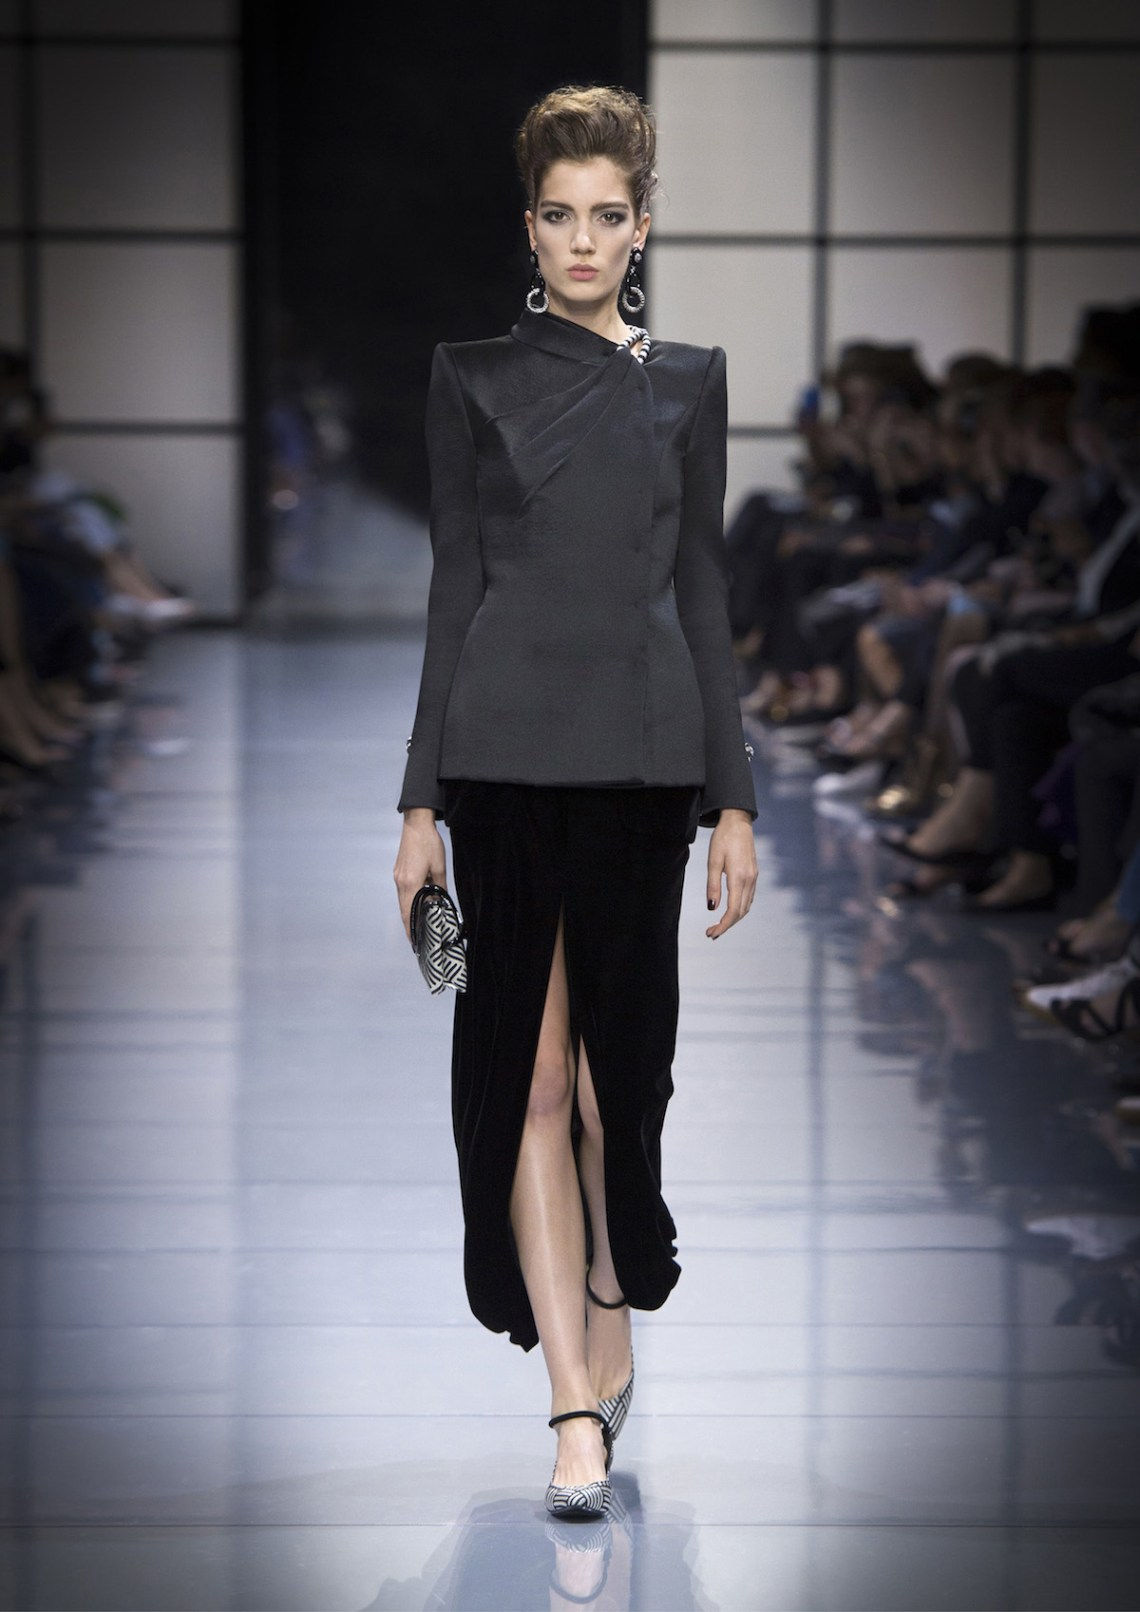 ARMANI PRIVE HAUTE COUTURE - Fall Winter 2016